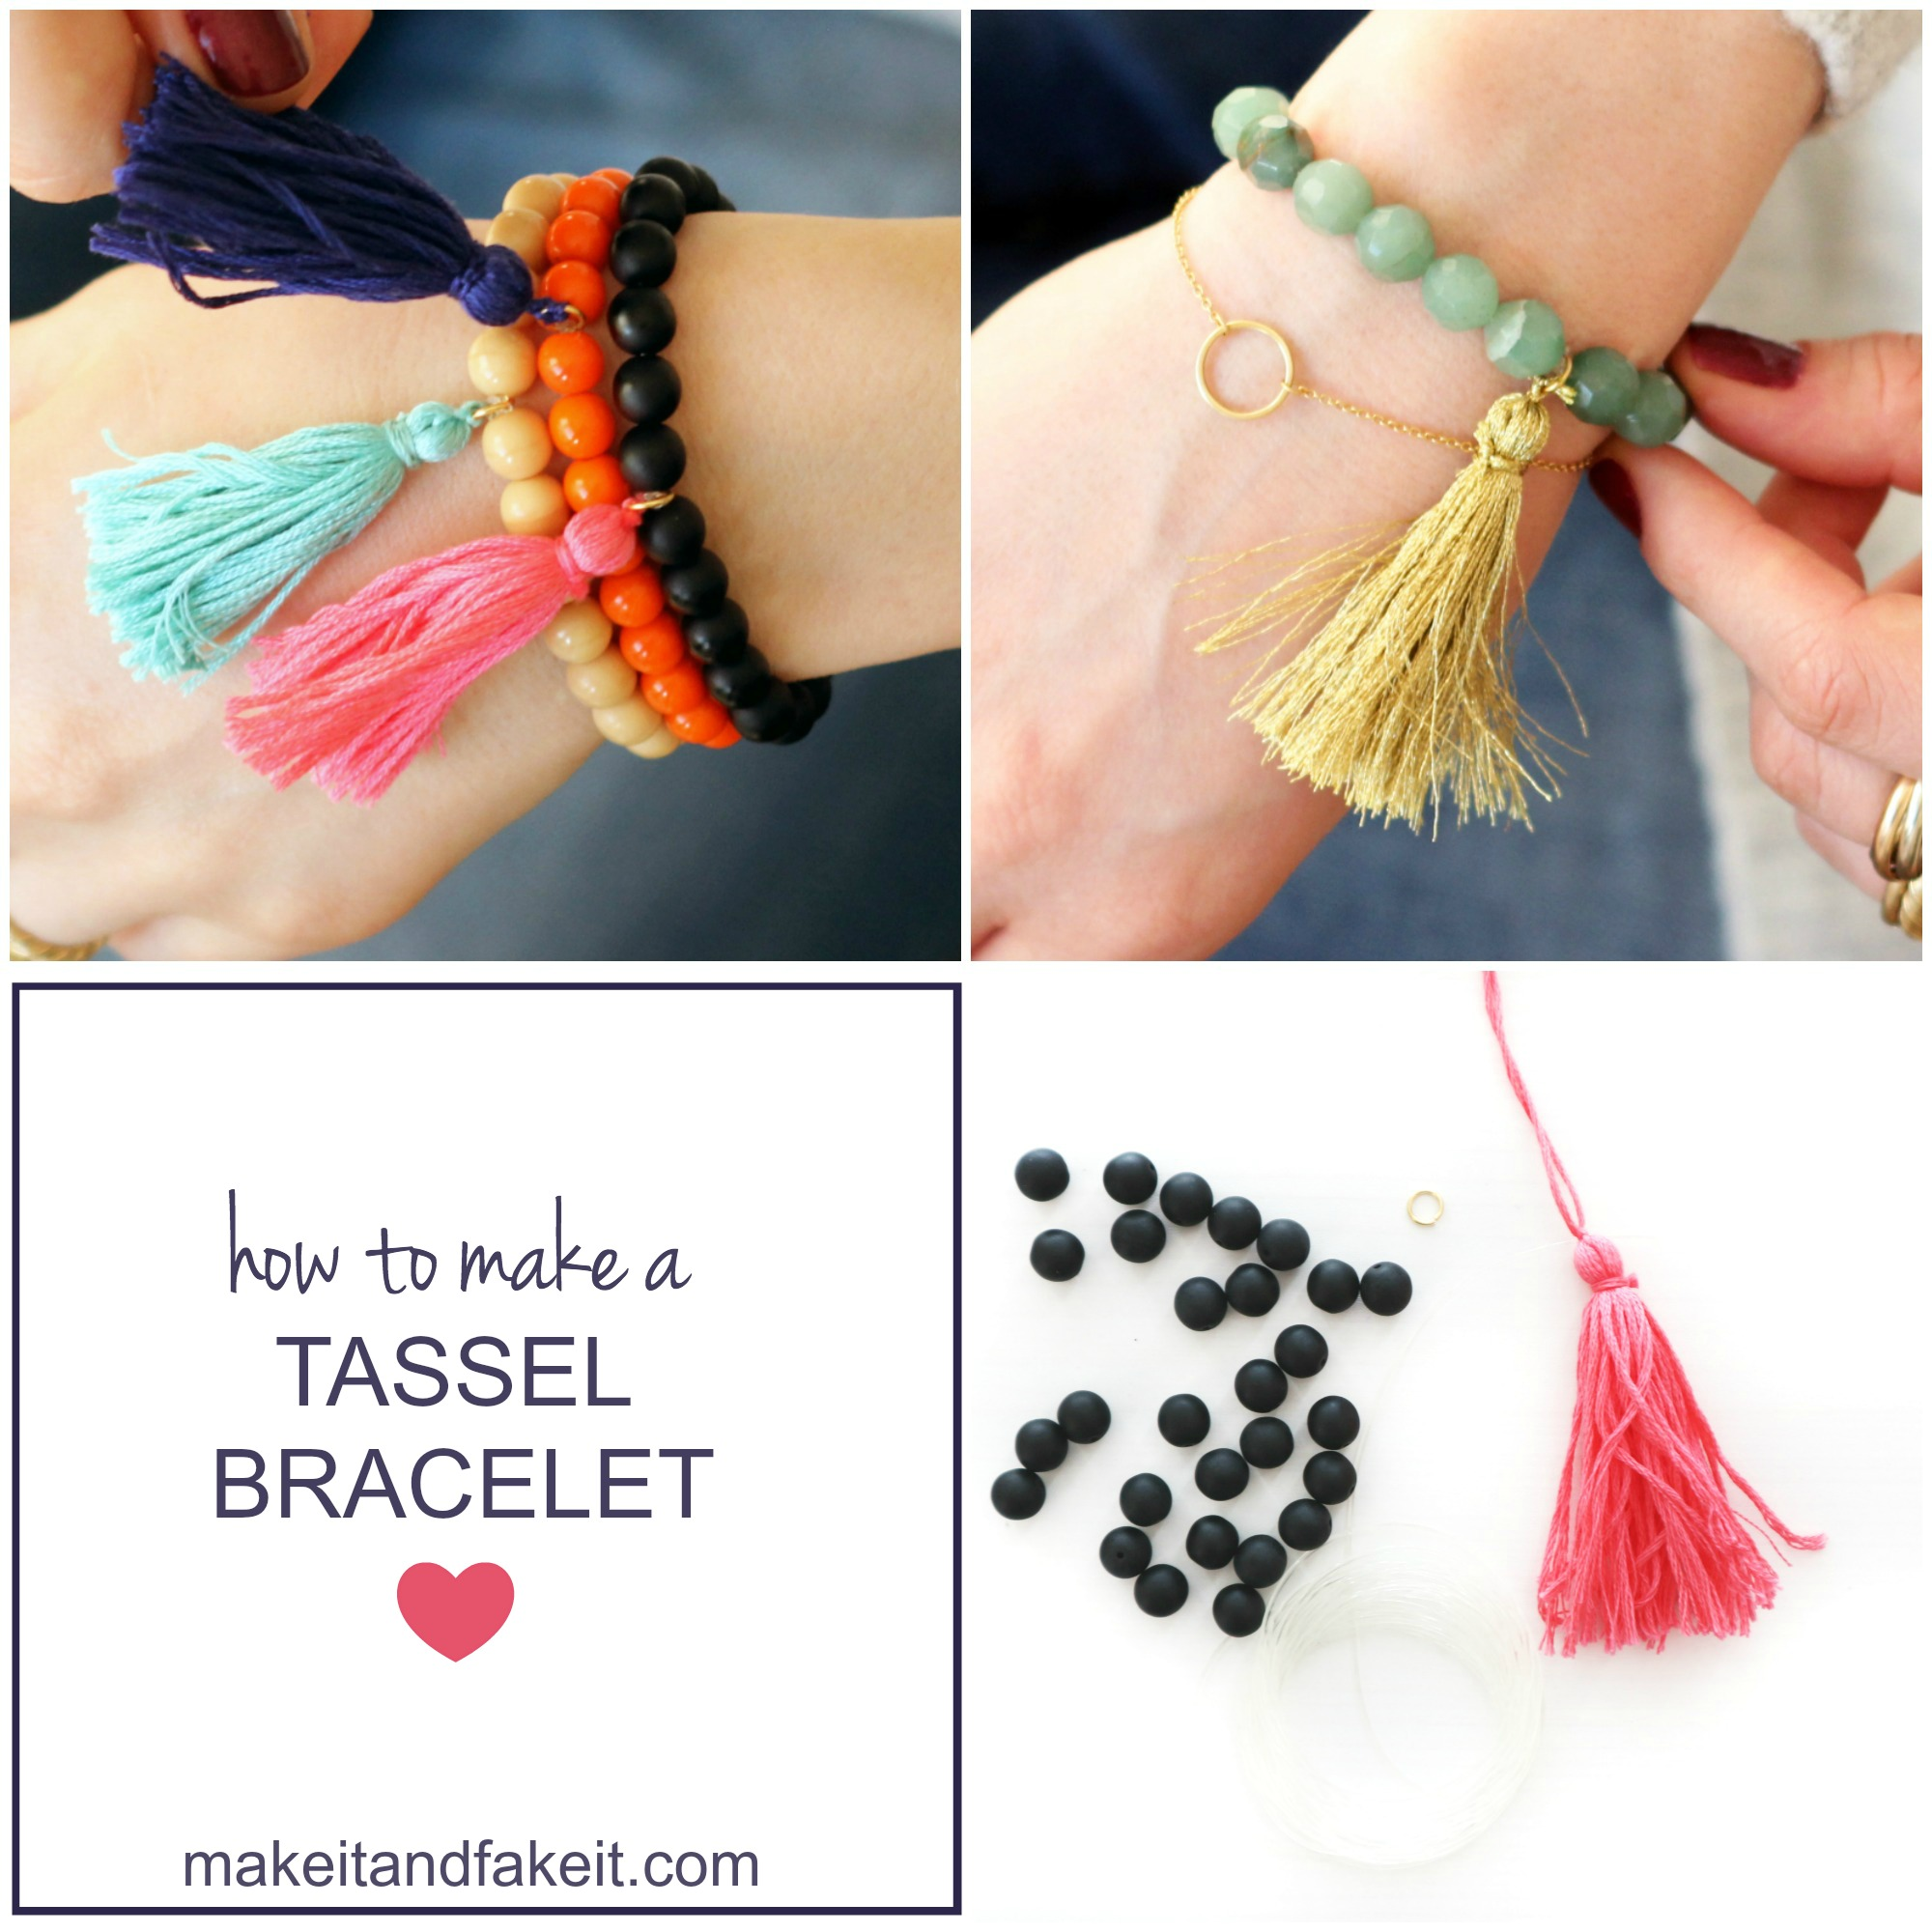 How to Make a Tassel Bracelet